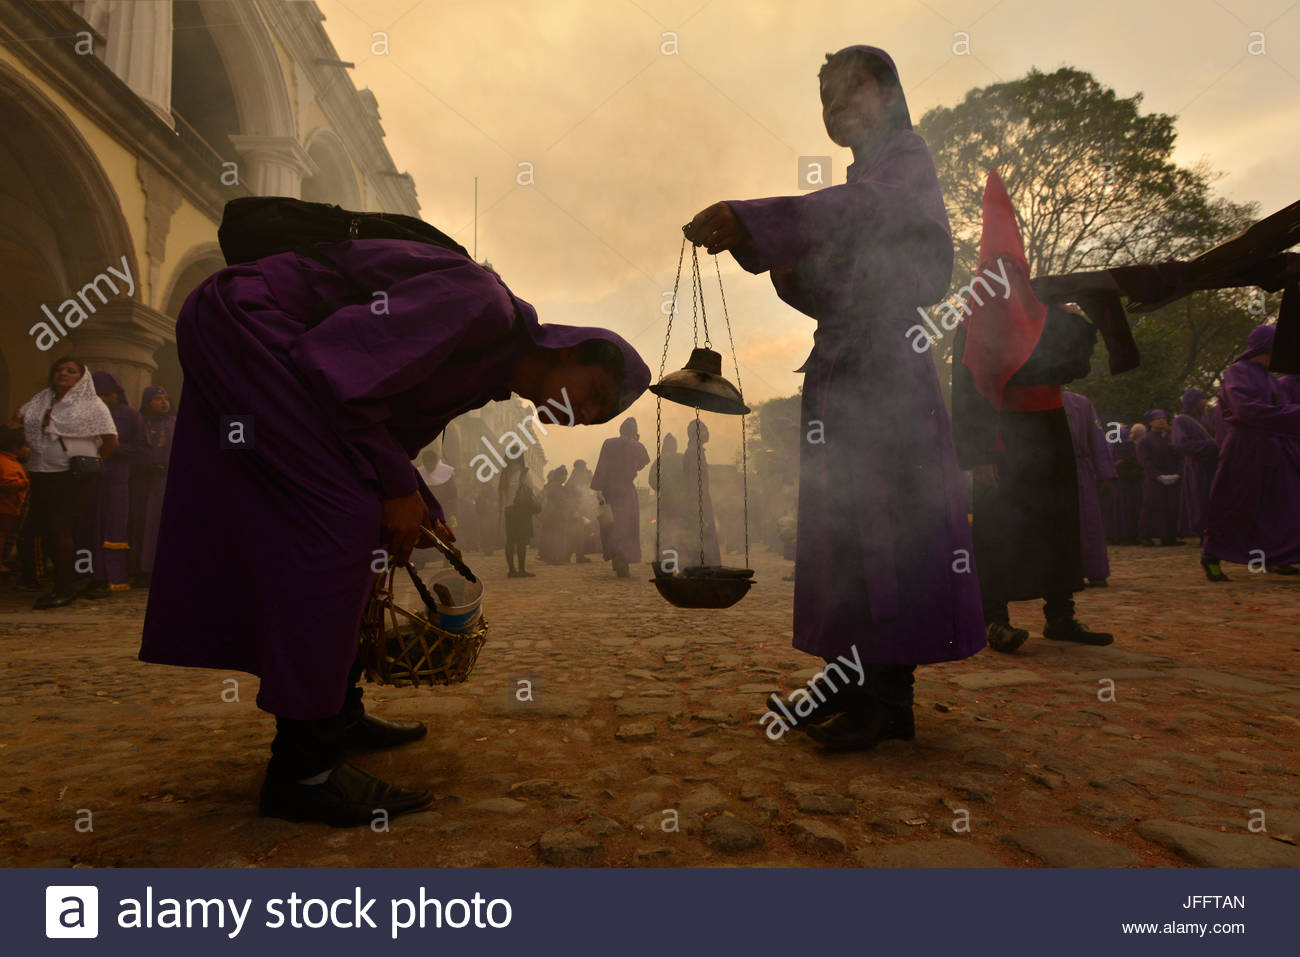 A member of the San Francisco Brotherhood bows before a censer during Holy Week celebrations in Antigua. - Stock Image